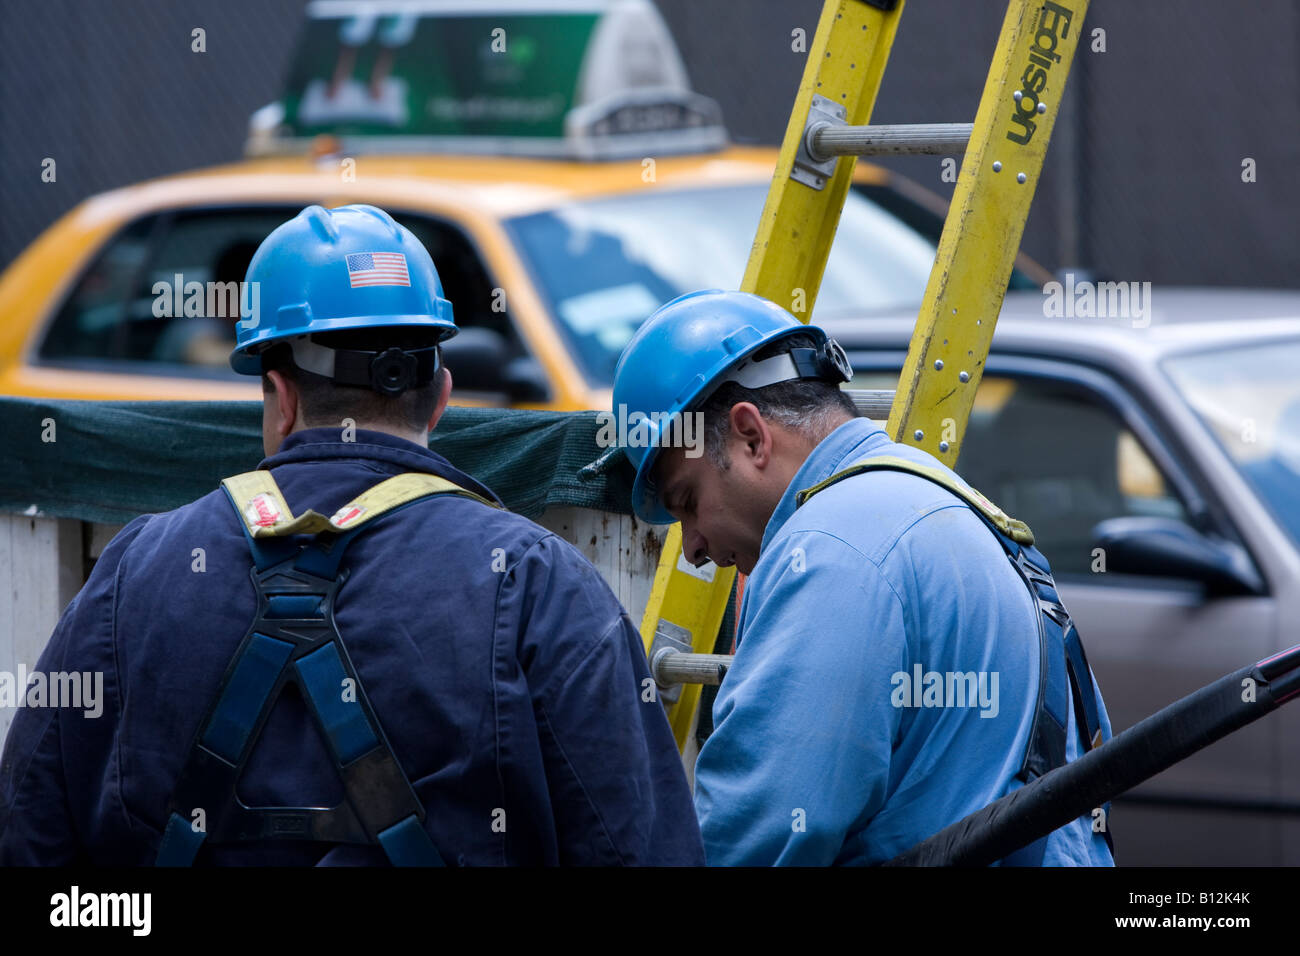 Two Con Edison workers in Manhattan NY. - Stock Image